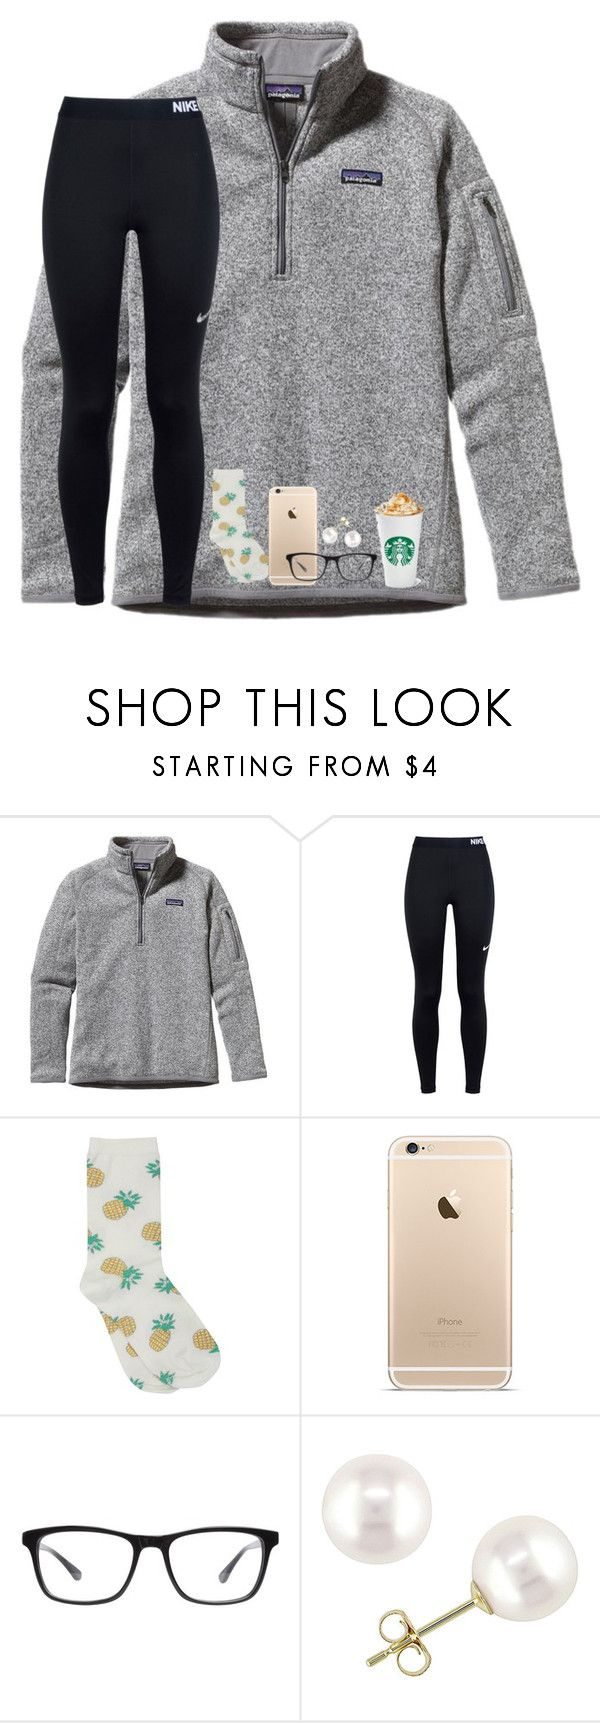 """""""day 3 of martha's contest!"""" by lindsaygreys ❤ liked on Polyvore featuring Patagonia, NIKE, M&Co, Joseph Marc, Miadora and oneyearformartha"""